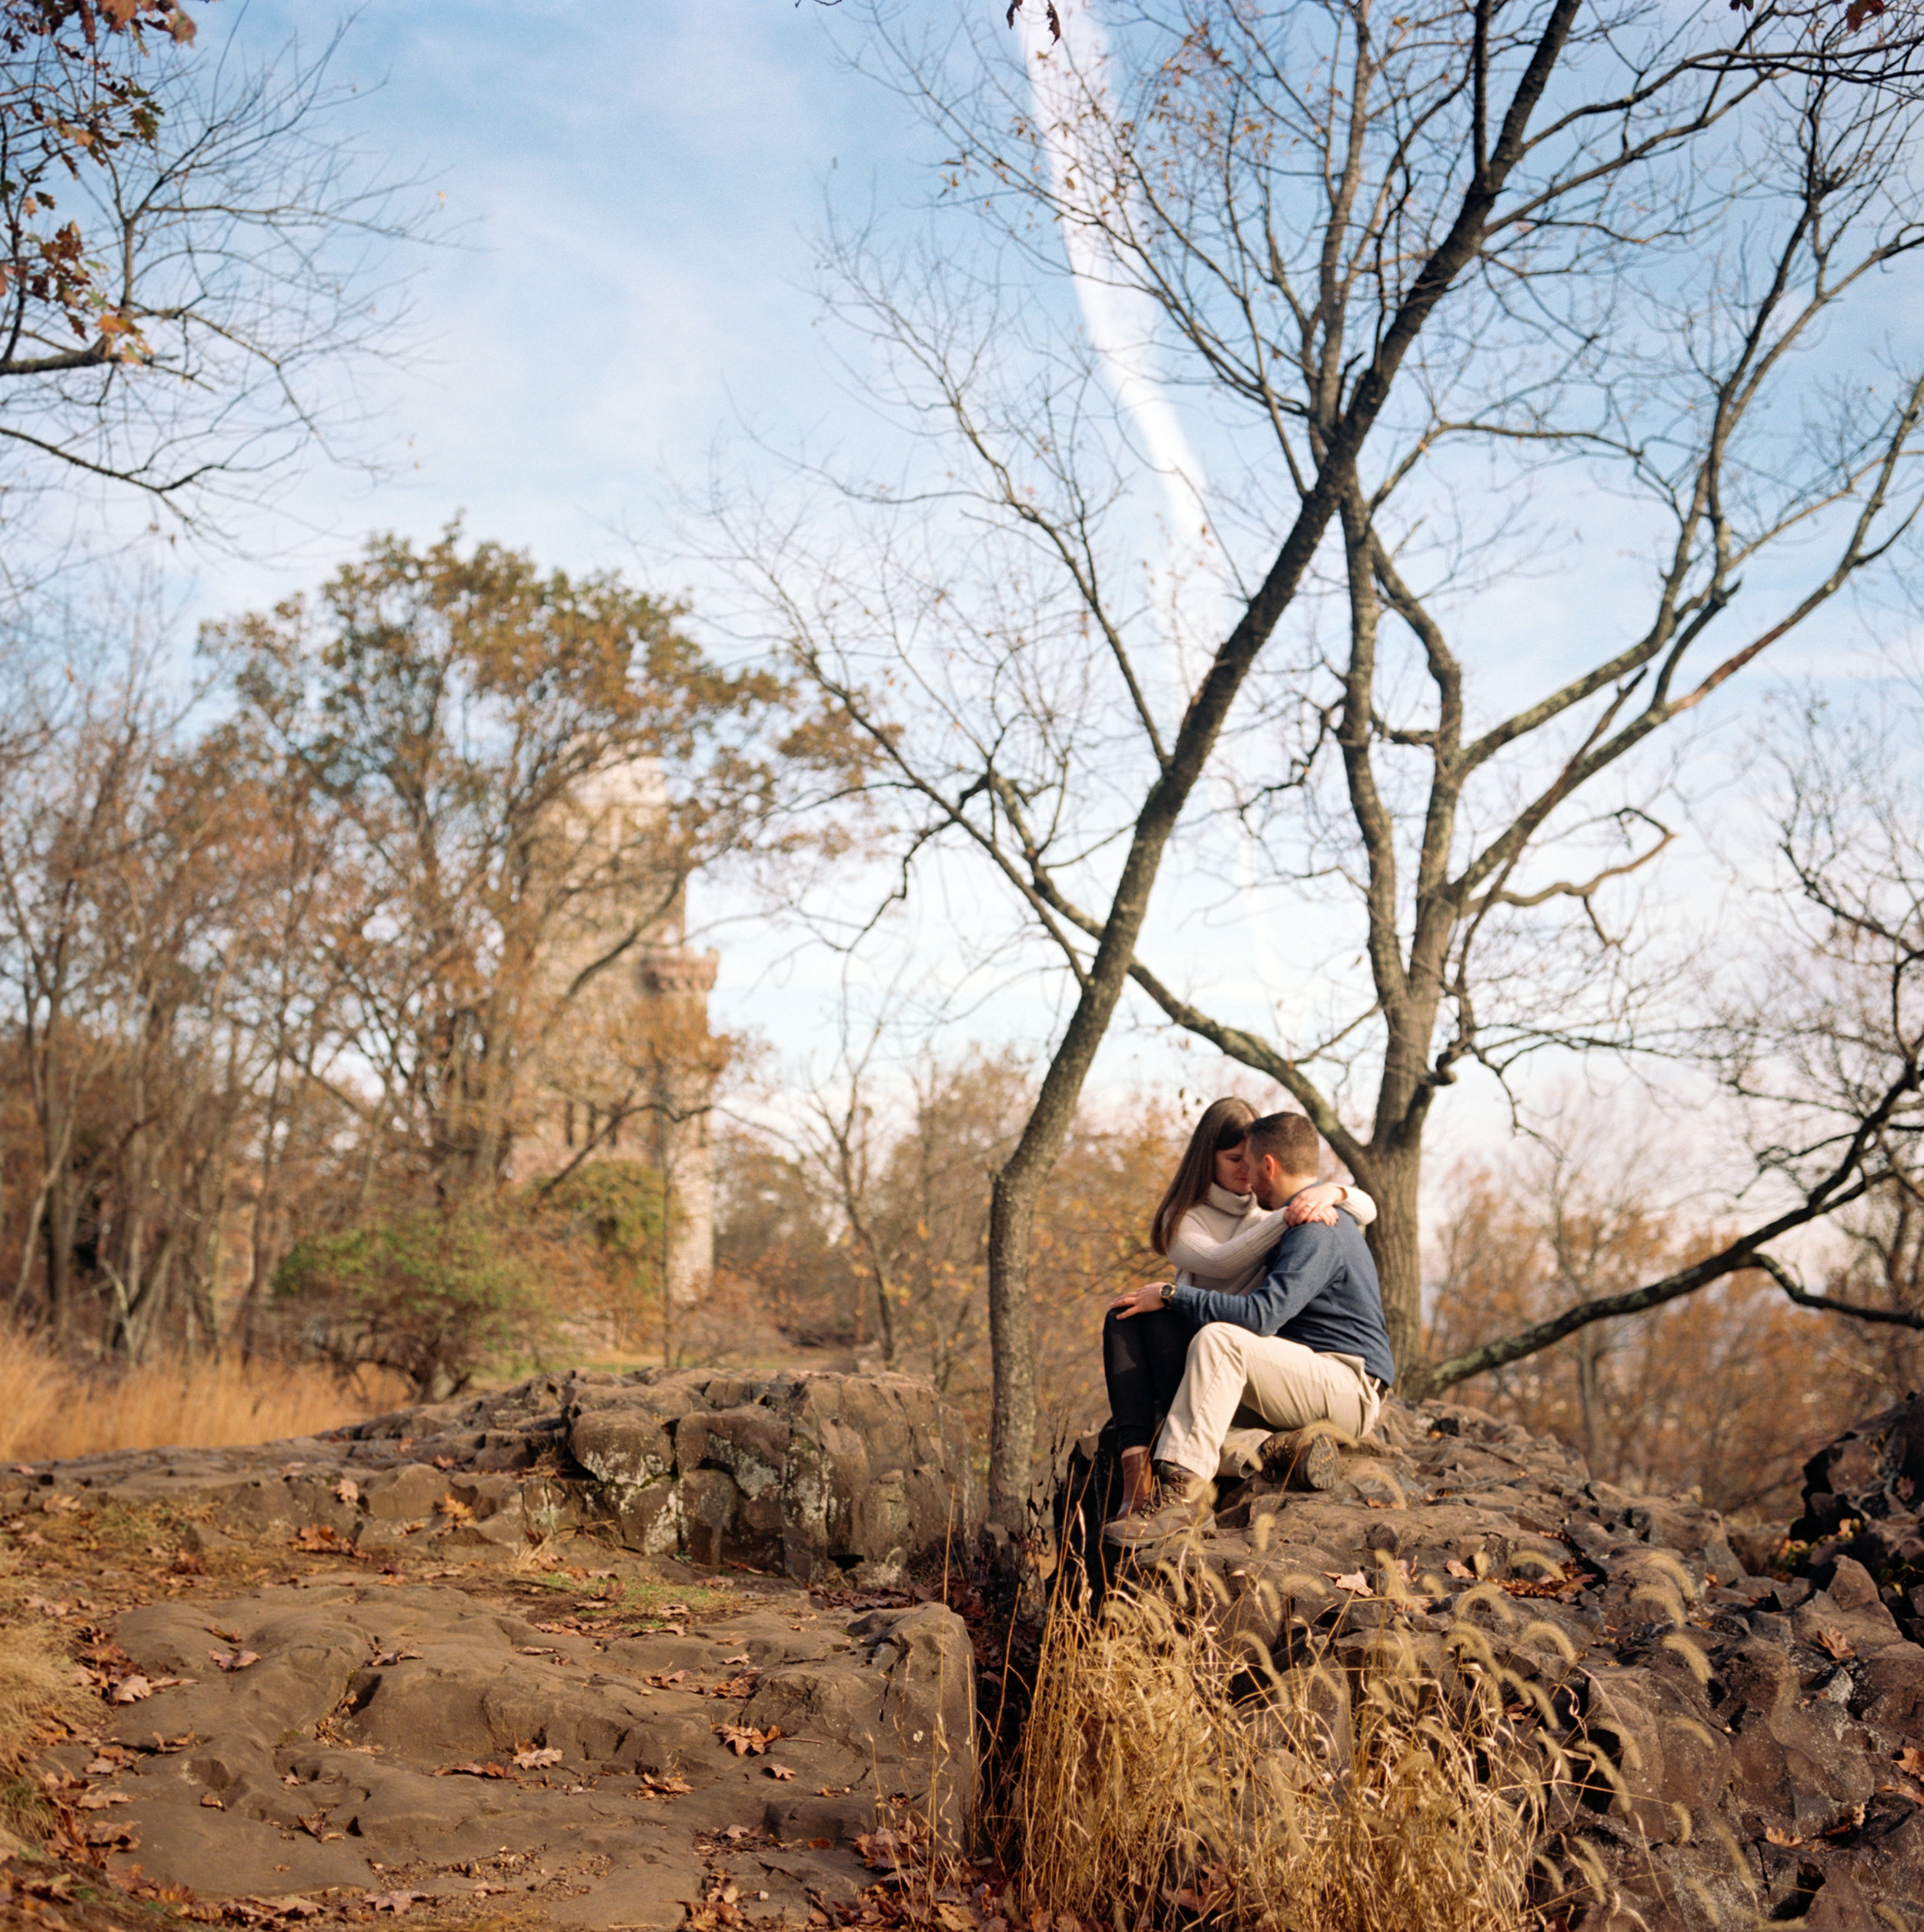 Amy+Brian- Garret Mountain Engagement Session- Fall Nature- Film Photography-New Jersey- Olivia Christina Photo-7.JPG